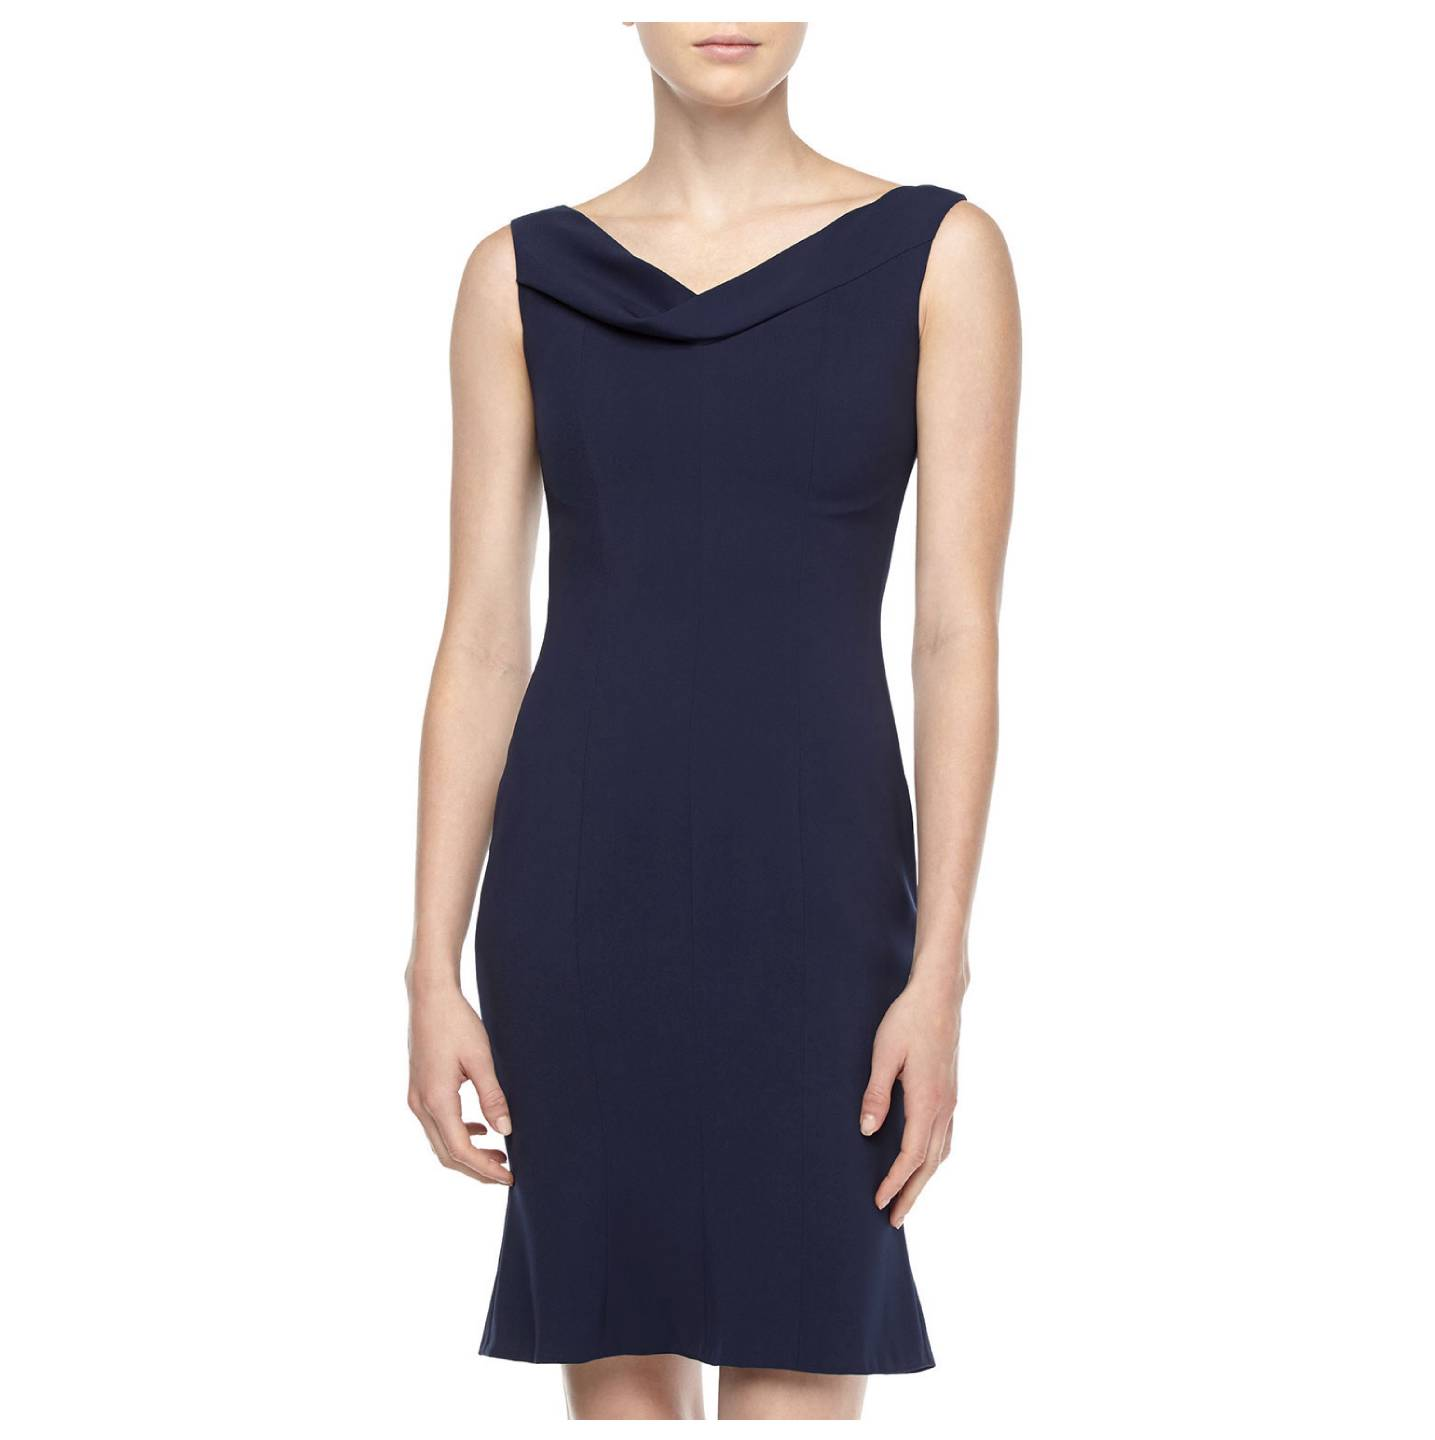 t tahari  by elie tahari  navy sapphire lisbeth dress us 8    uk 12    it 44 nwt